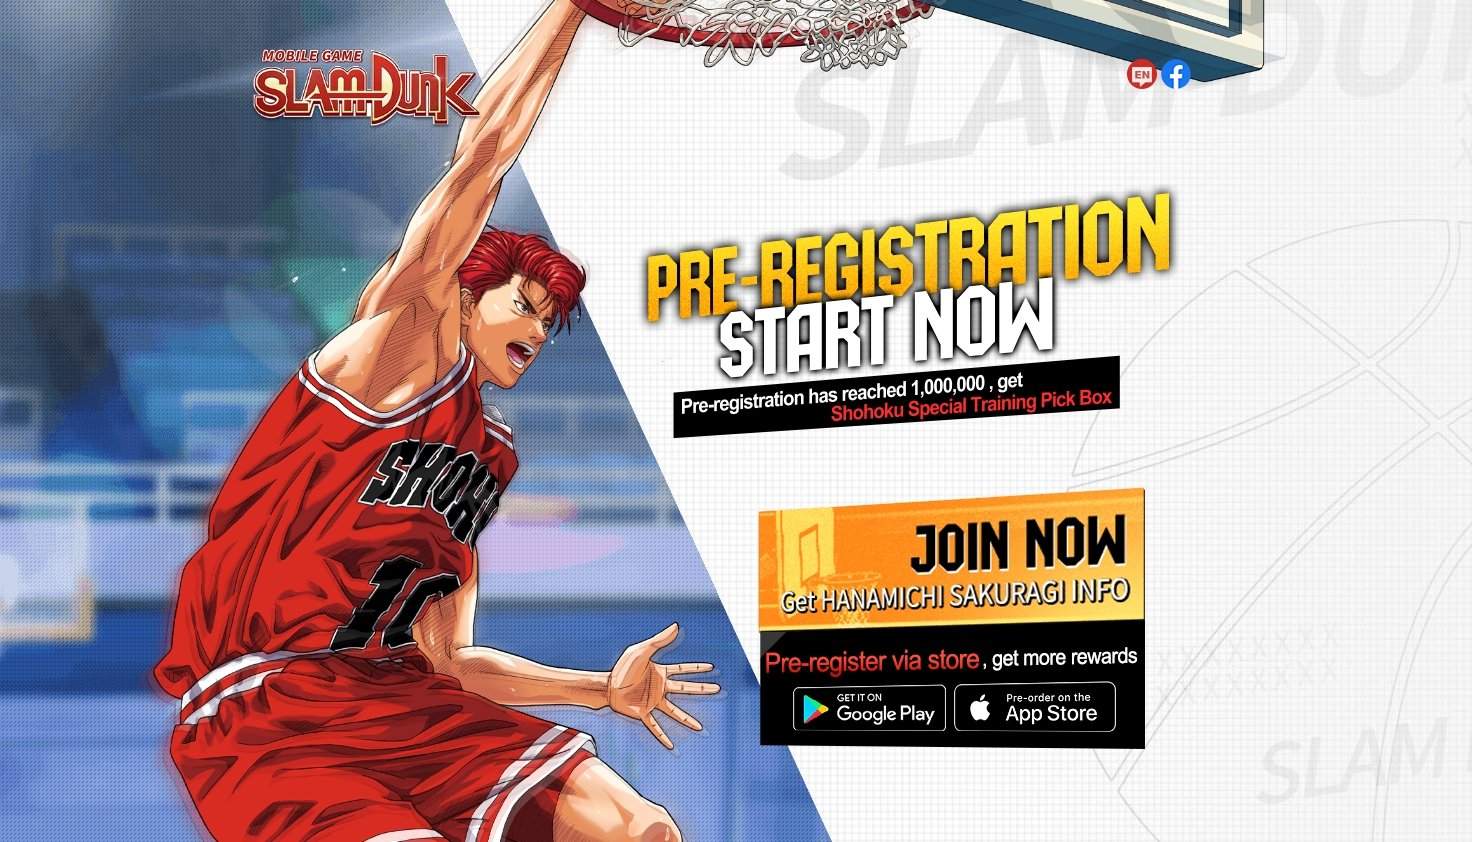 Slam Dunk Basketball Mobile Game Pre-Registrations Available Now With Bonuses